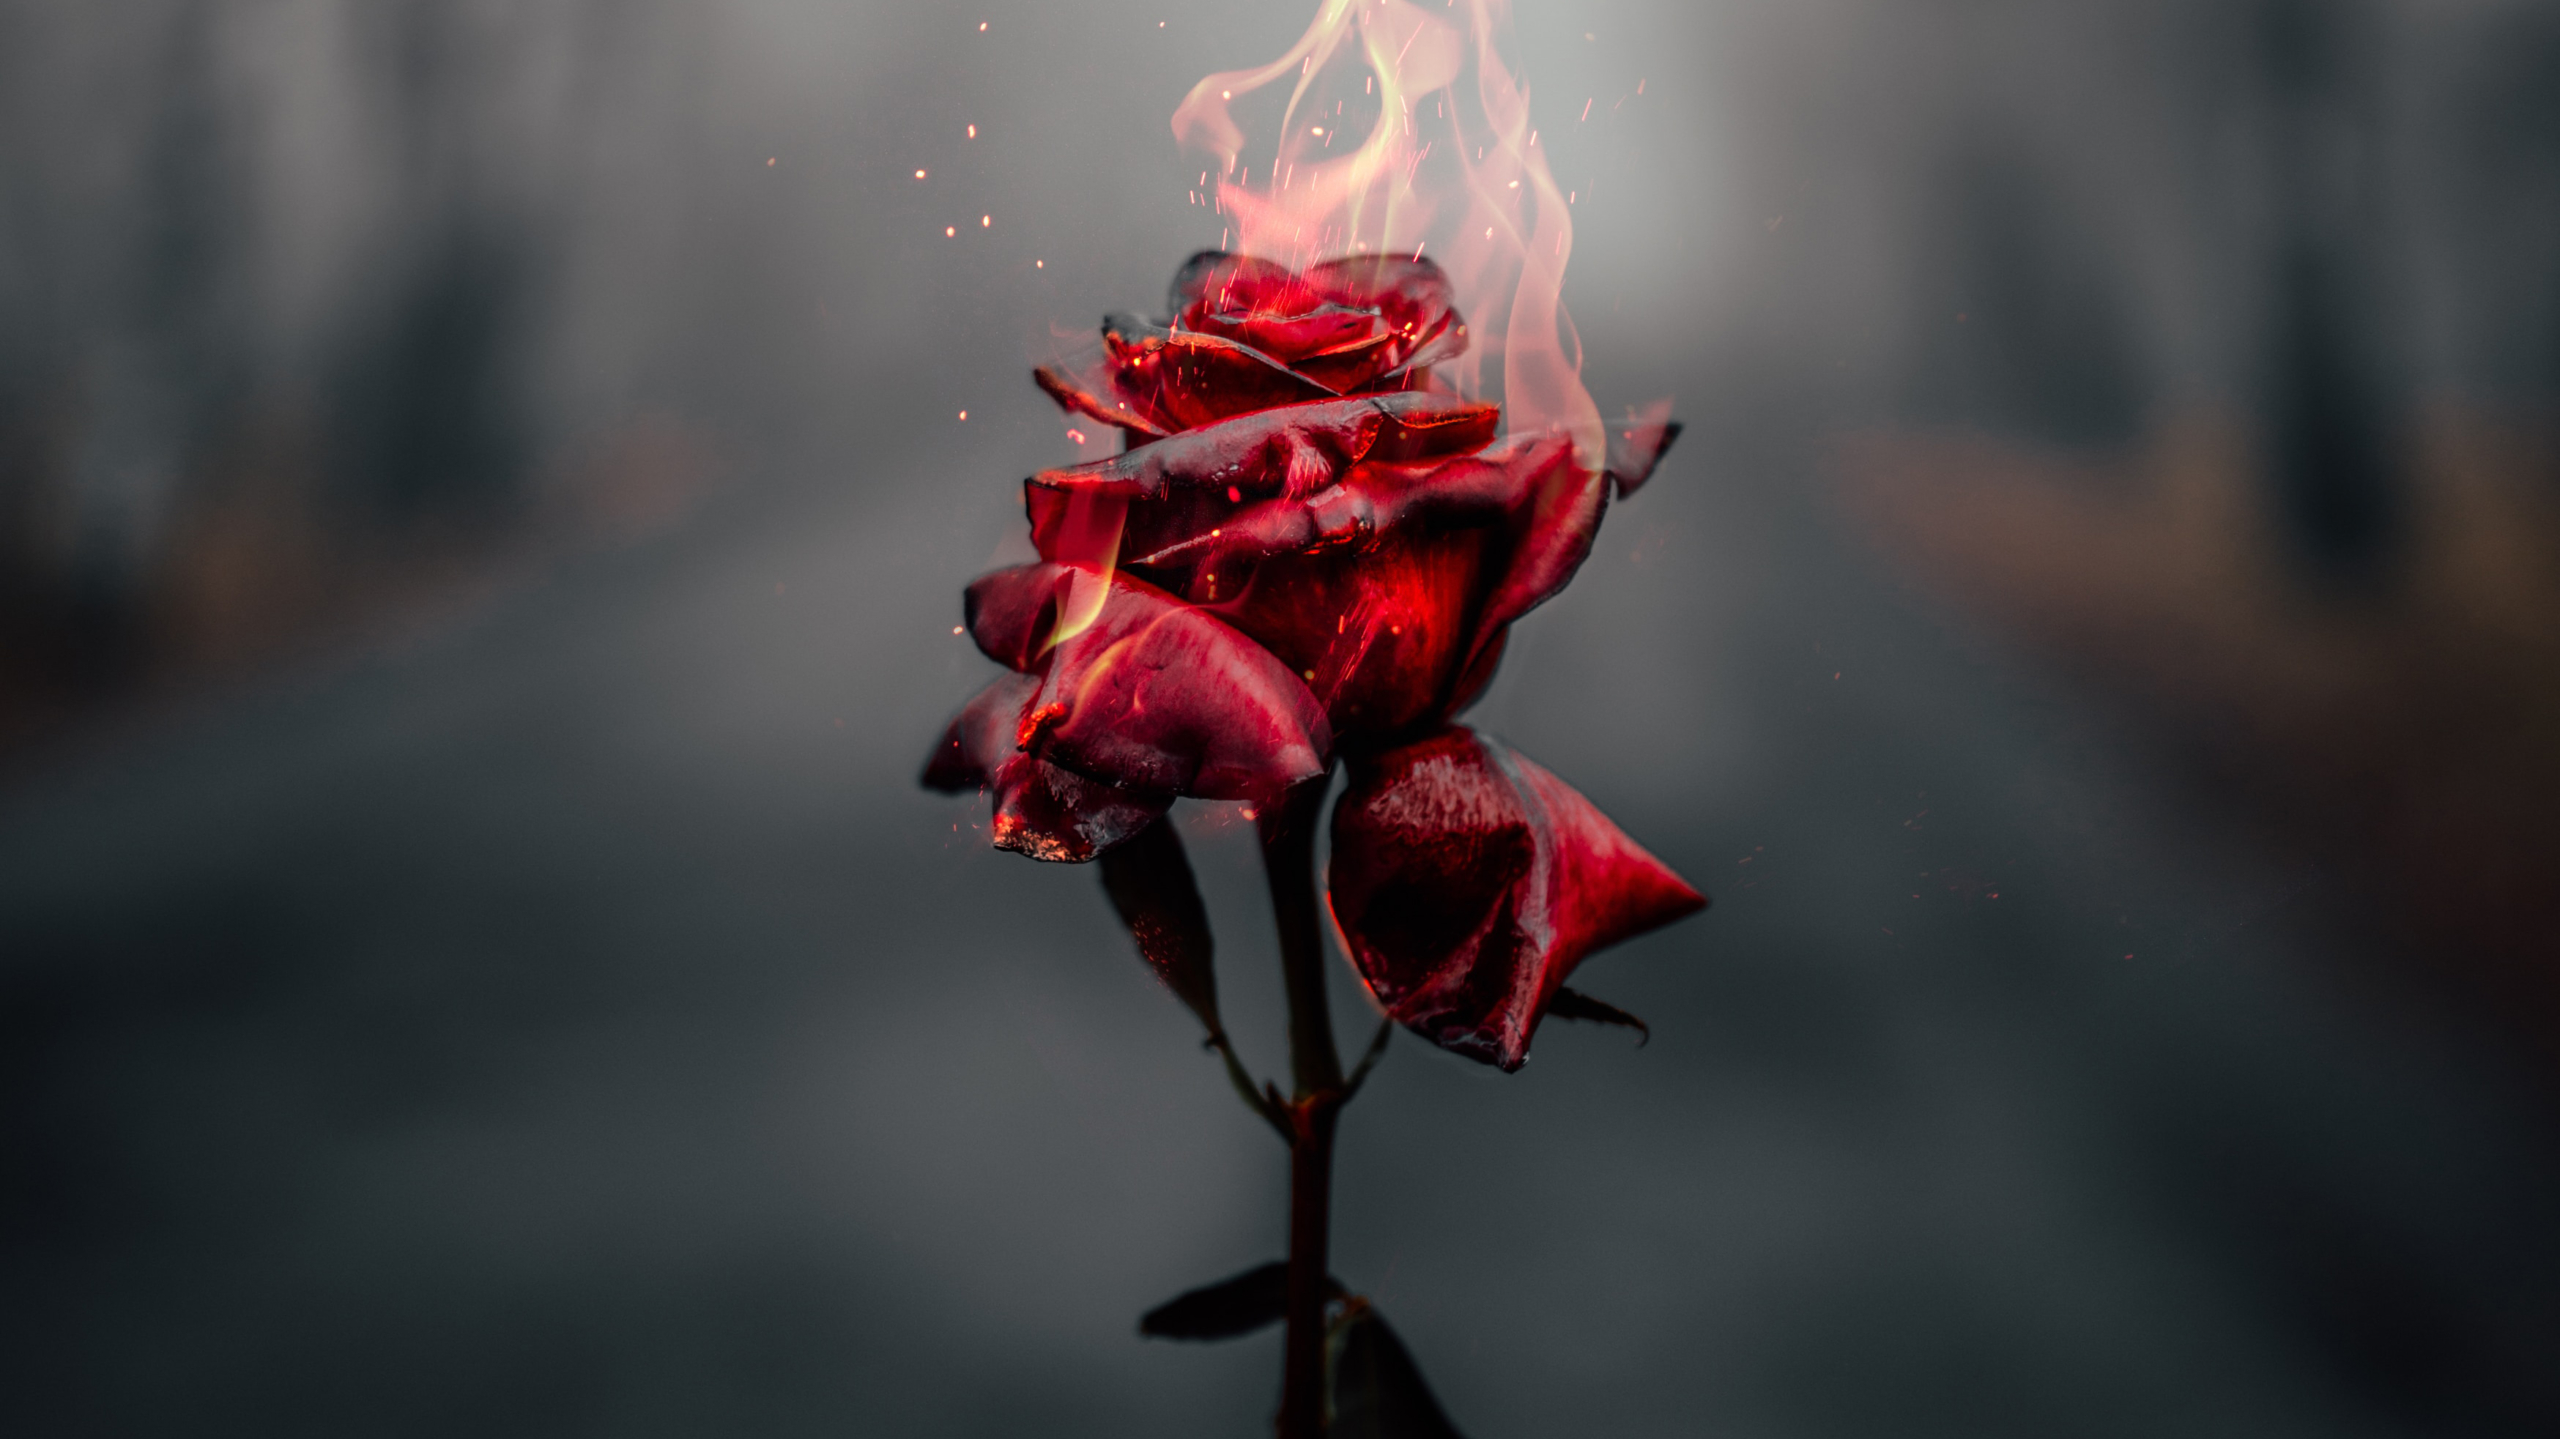 Why Use A Rose Wallpaper For Your Phone?